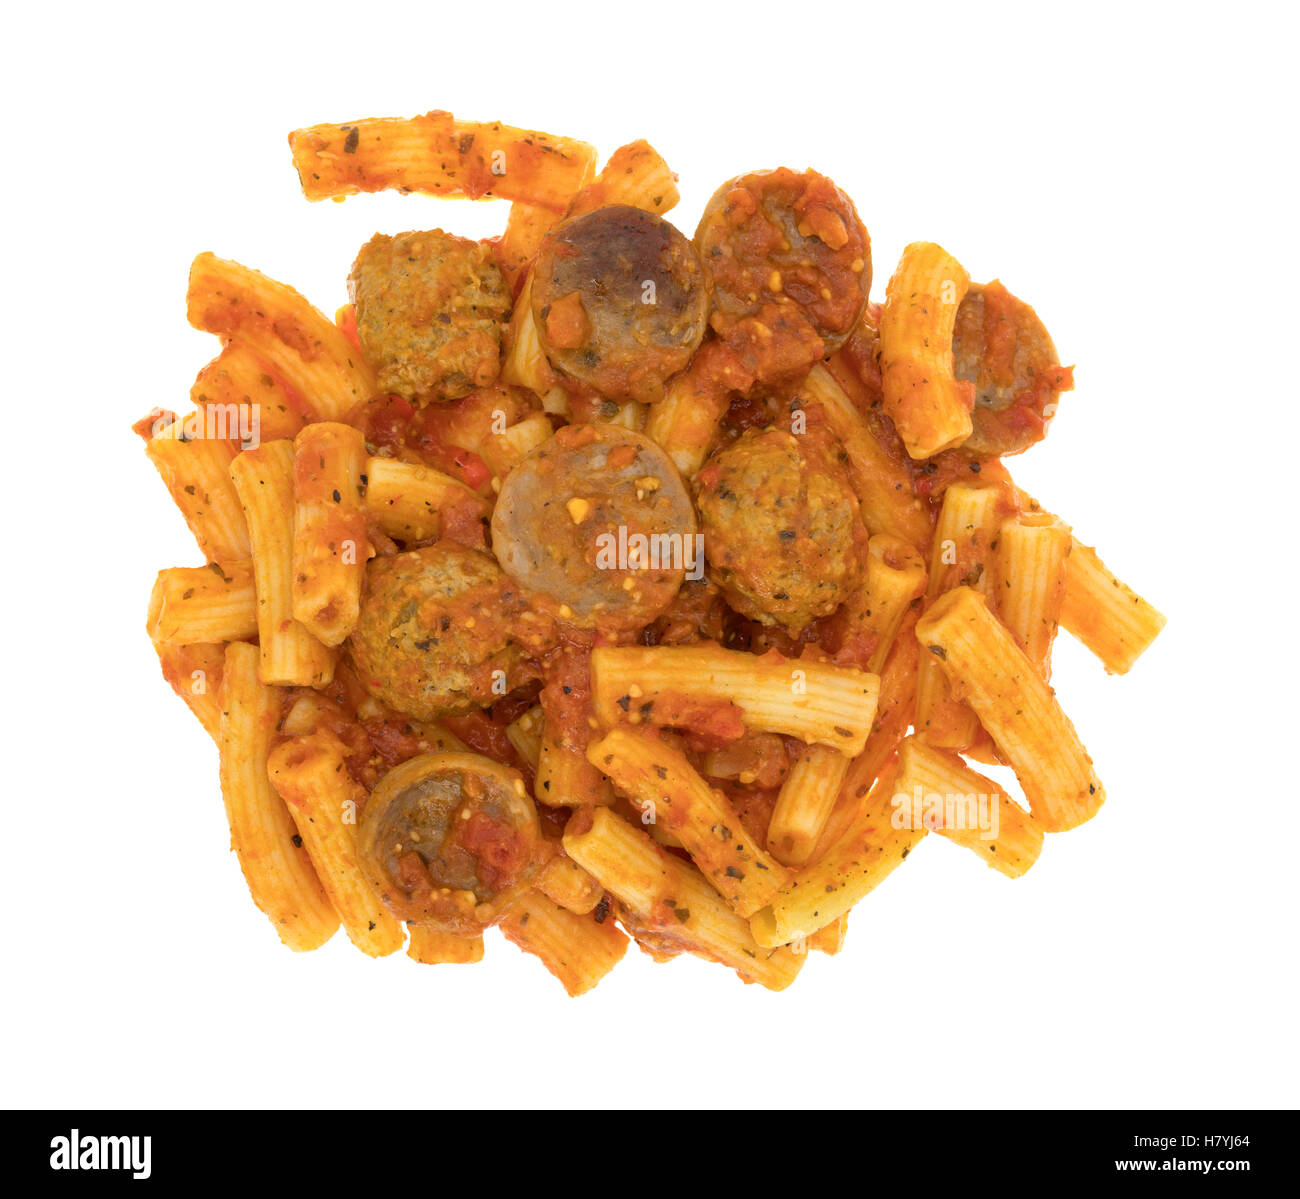 Top view of a portion of rigatoni pasta with sausage and meatballs in a marinara sauce isolated on a white background. Stock Photo